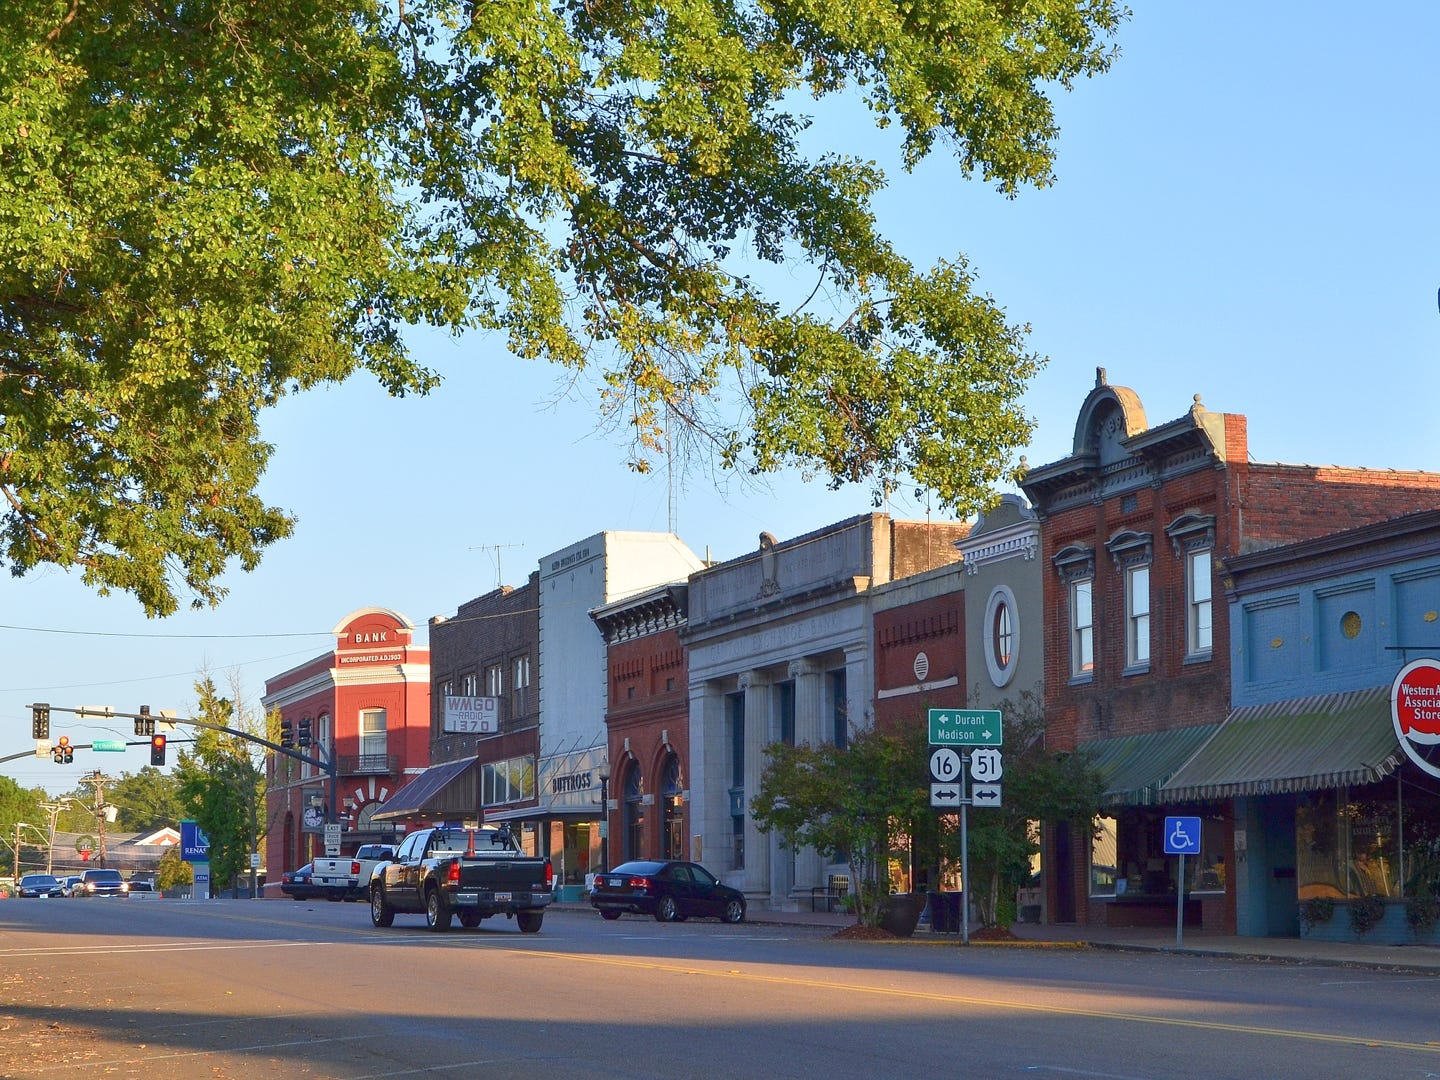 """Mississippi: Though it's technically a city, Canton has a historic small-town feel. That's why it's served as an idyllic backdrop for several major films, including """"A Time to Kill"""" and """"O Brother, Where Art Thou?"""" Local tourist attractions include Canton's Museum of History, the Courthouse Square and the city's contributions to the Mississippi Blues Trail. It's especially charming to visit during Christmastime when the whole city is strung with hundreds of thousands of lights. Canton's Museum of History: $5."""